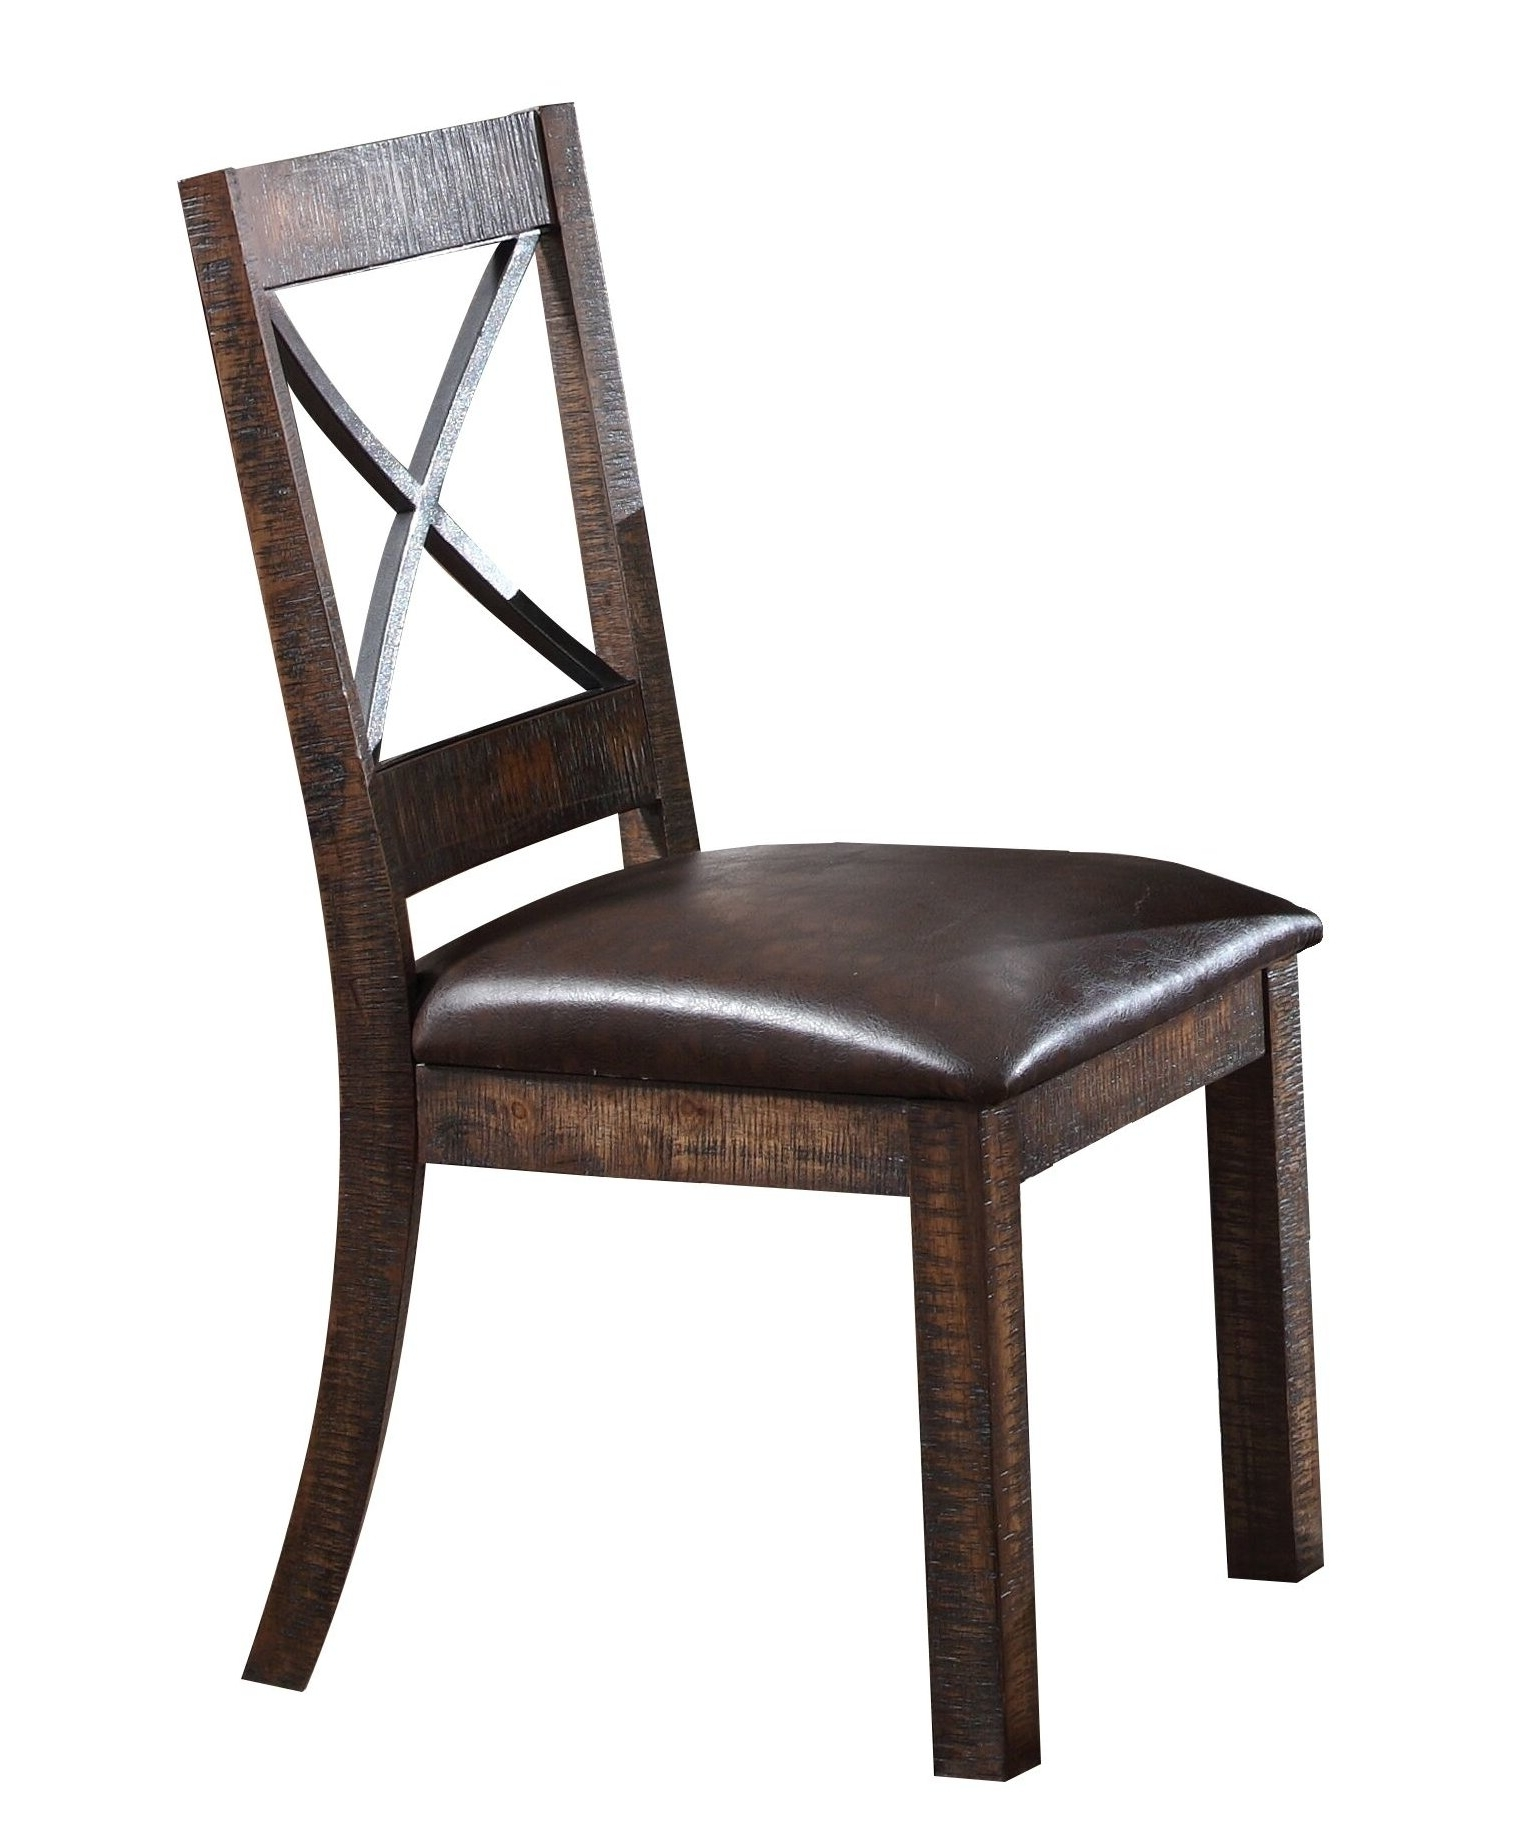 Loon Peak Carly Upholstered Dining Chair (View 12 of 20)